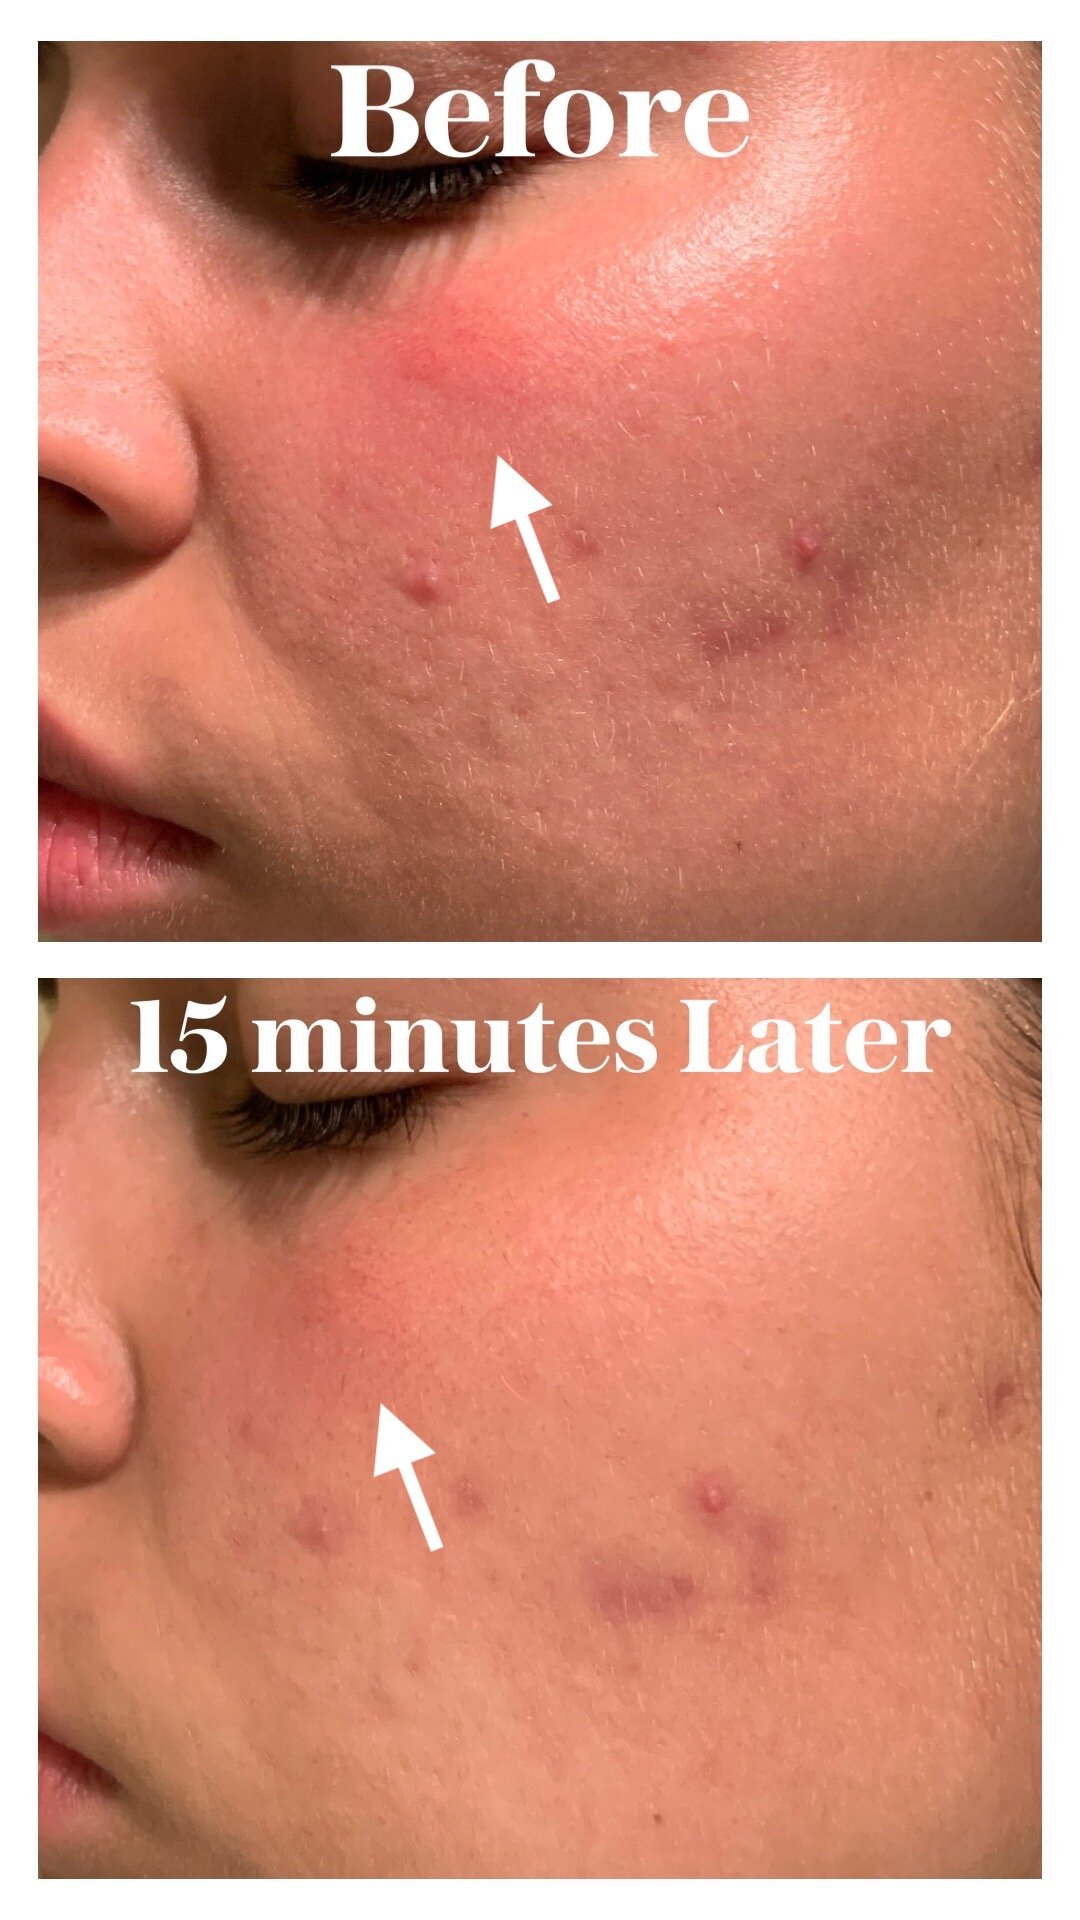 [REVIEW] Huxley Keep Calm Healing Mask (Before and After)